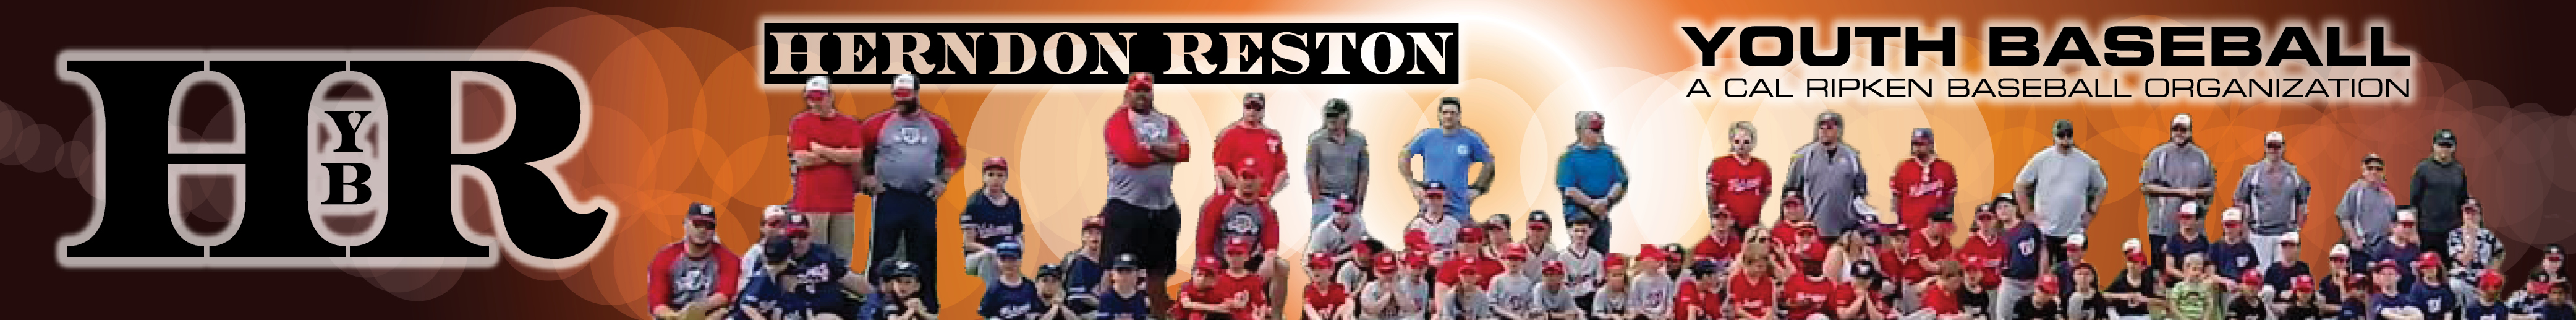 Herndon Reston Youth Baseball, Baseball, Run, Field